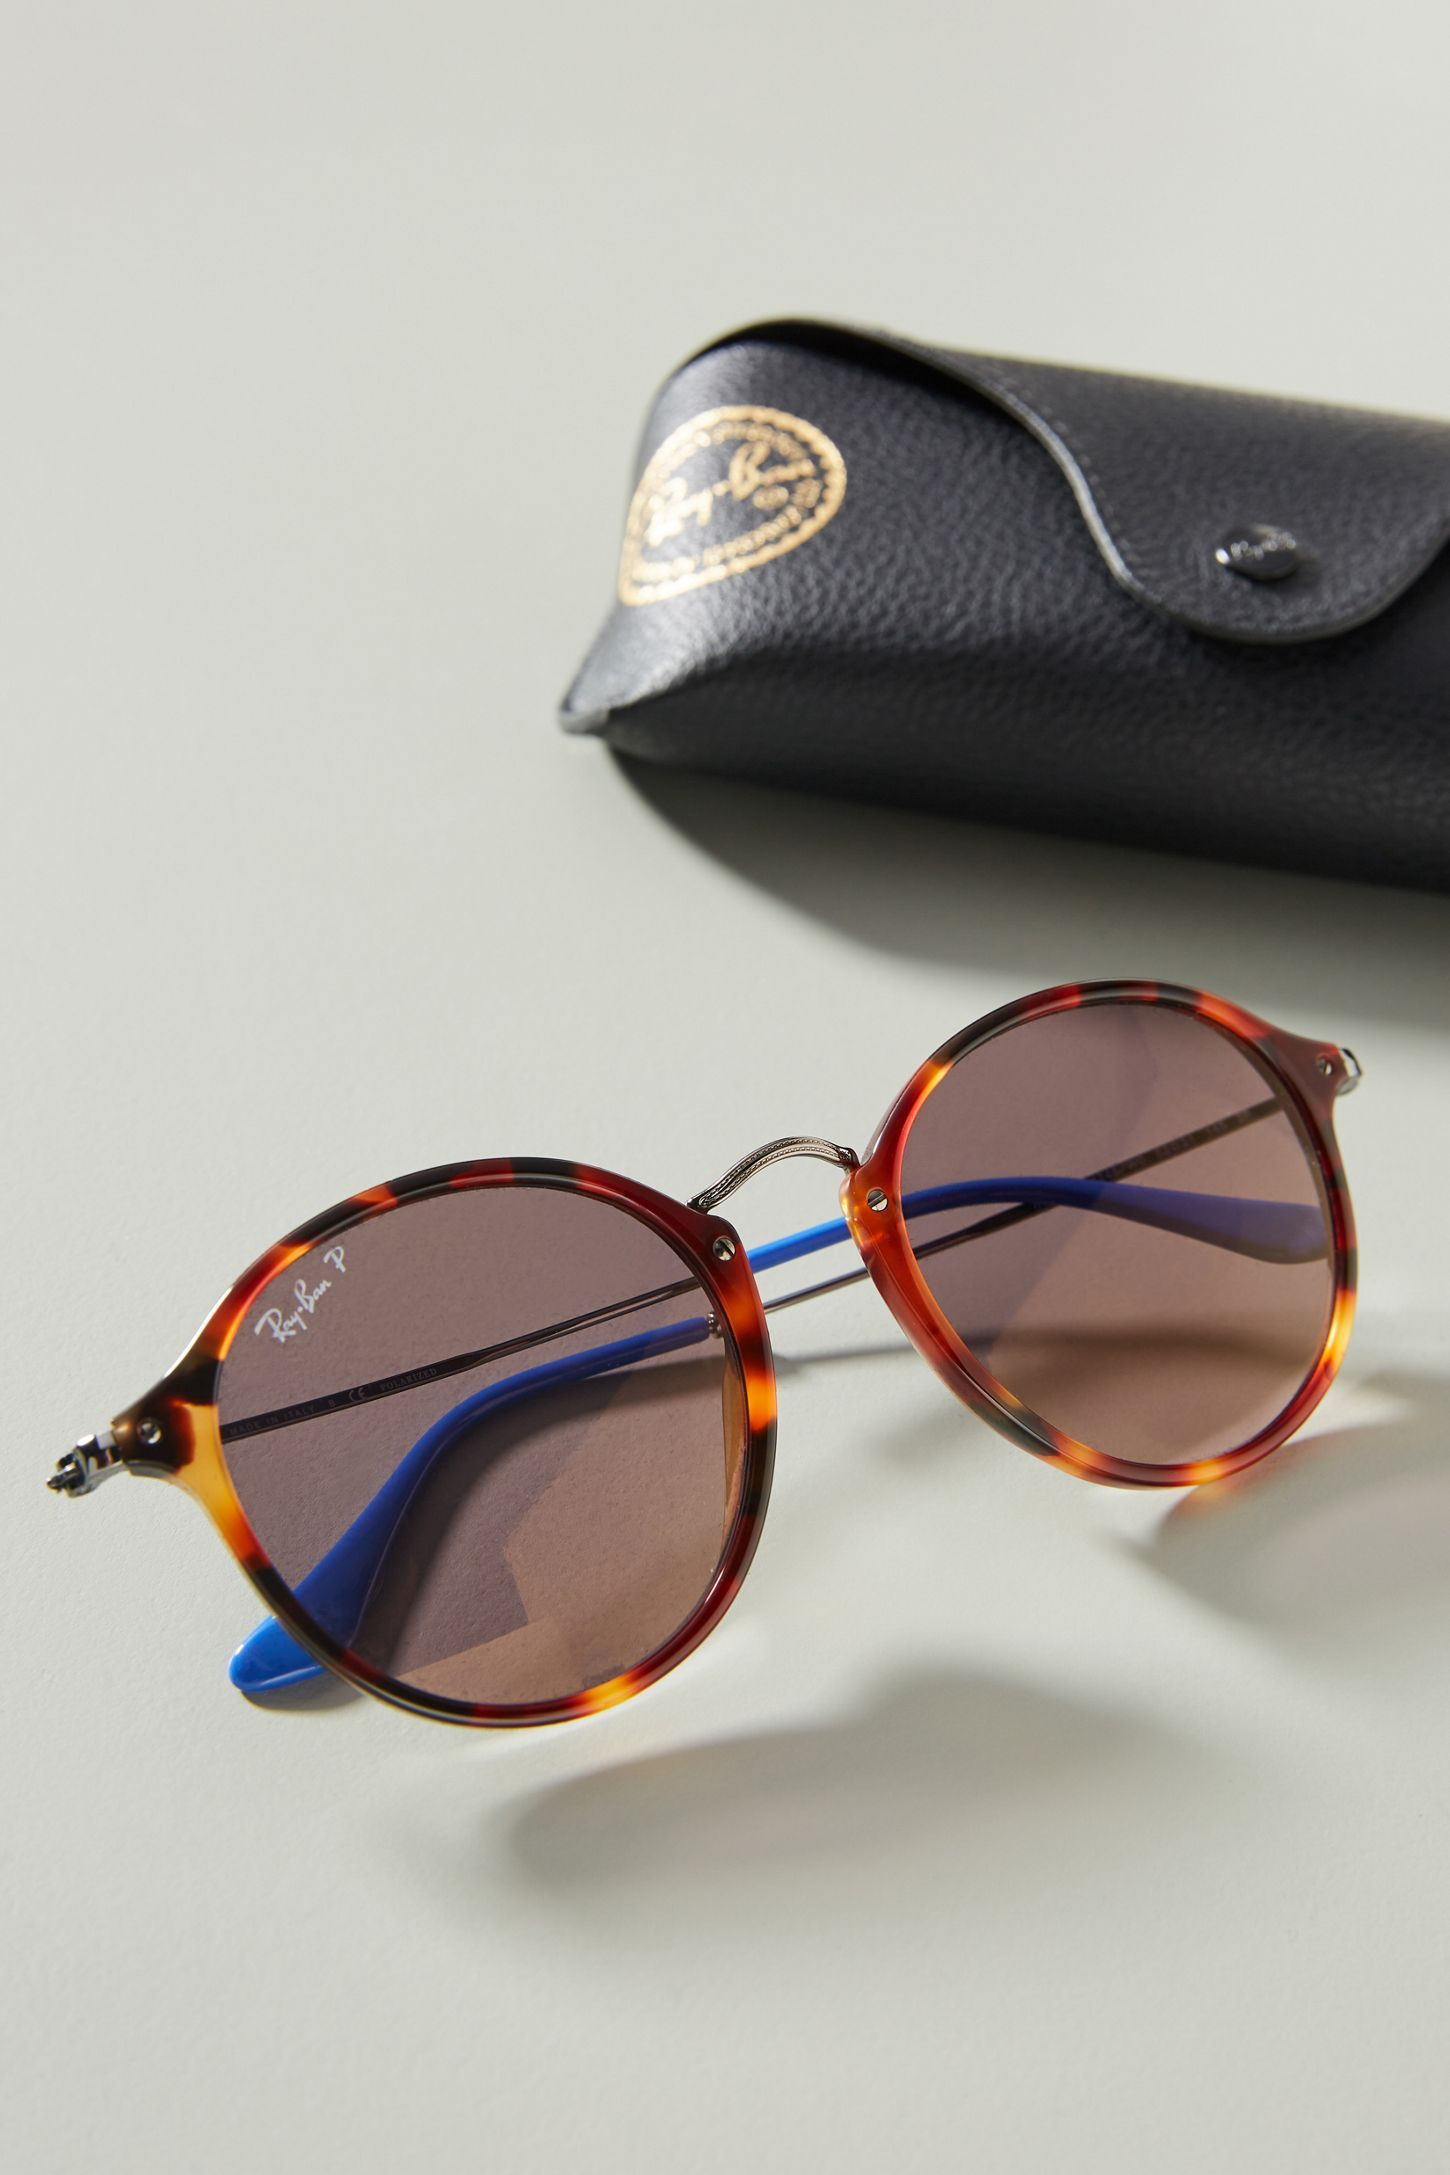 0d4d368c00 Ray-Ban Round Fleck Sunglasses in 2019 | Clothes. Shoes. Accessories ...